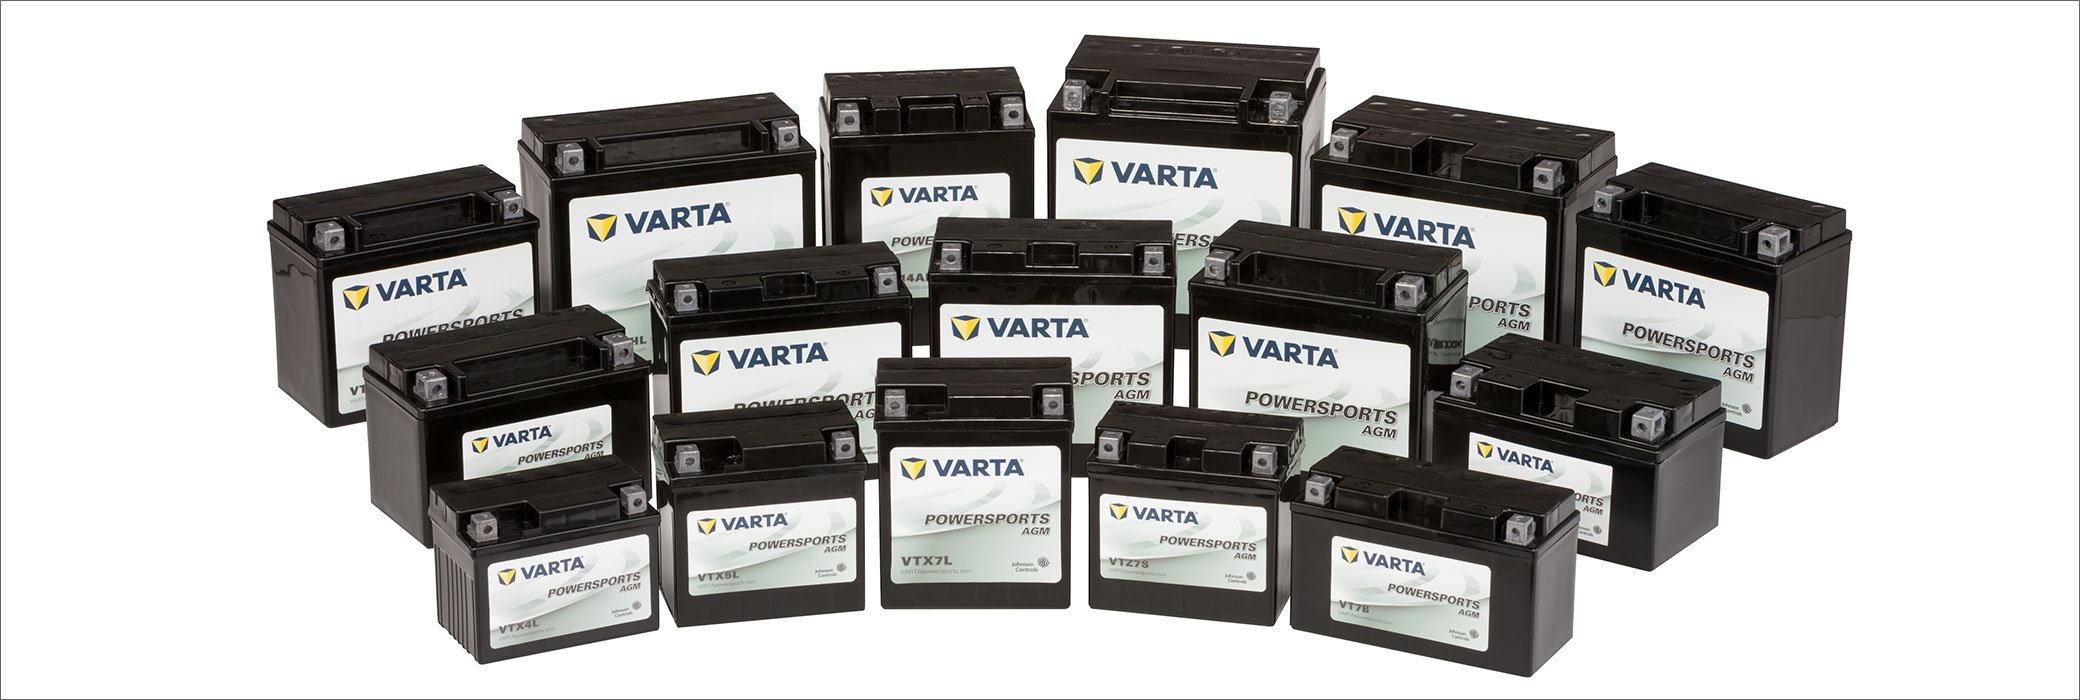 VARTA_PS_AGM-Batteries_2080x700.jpg